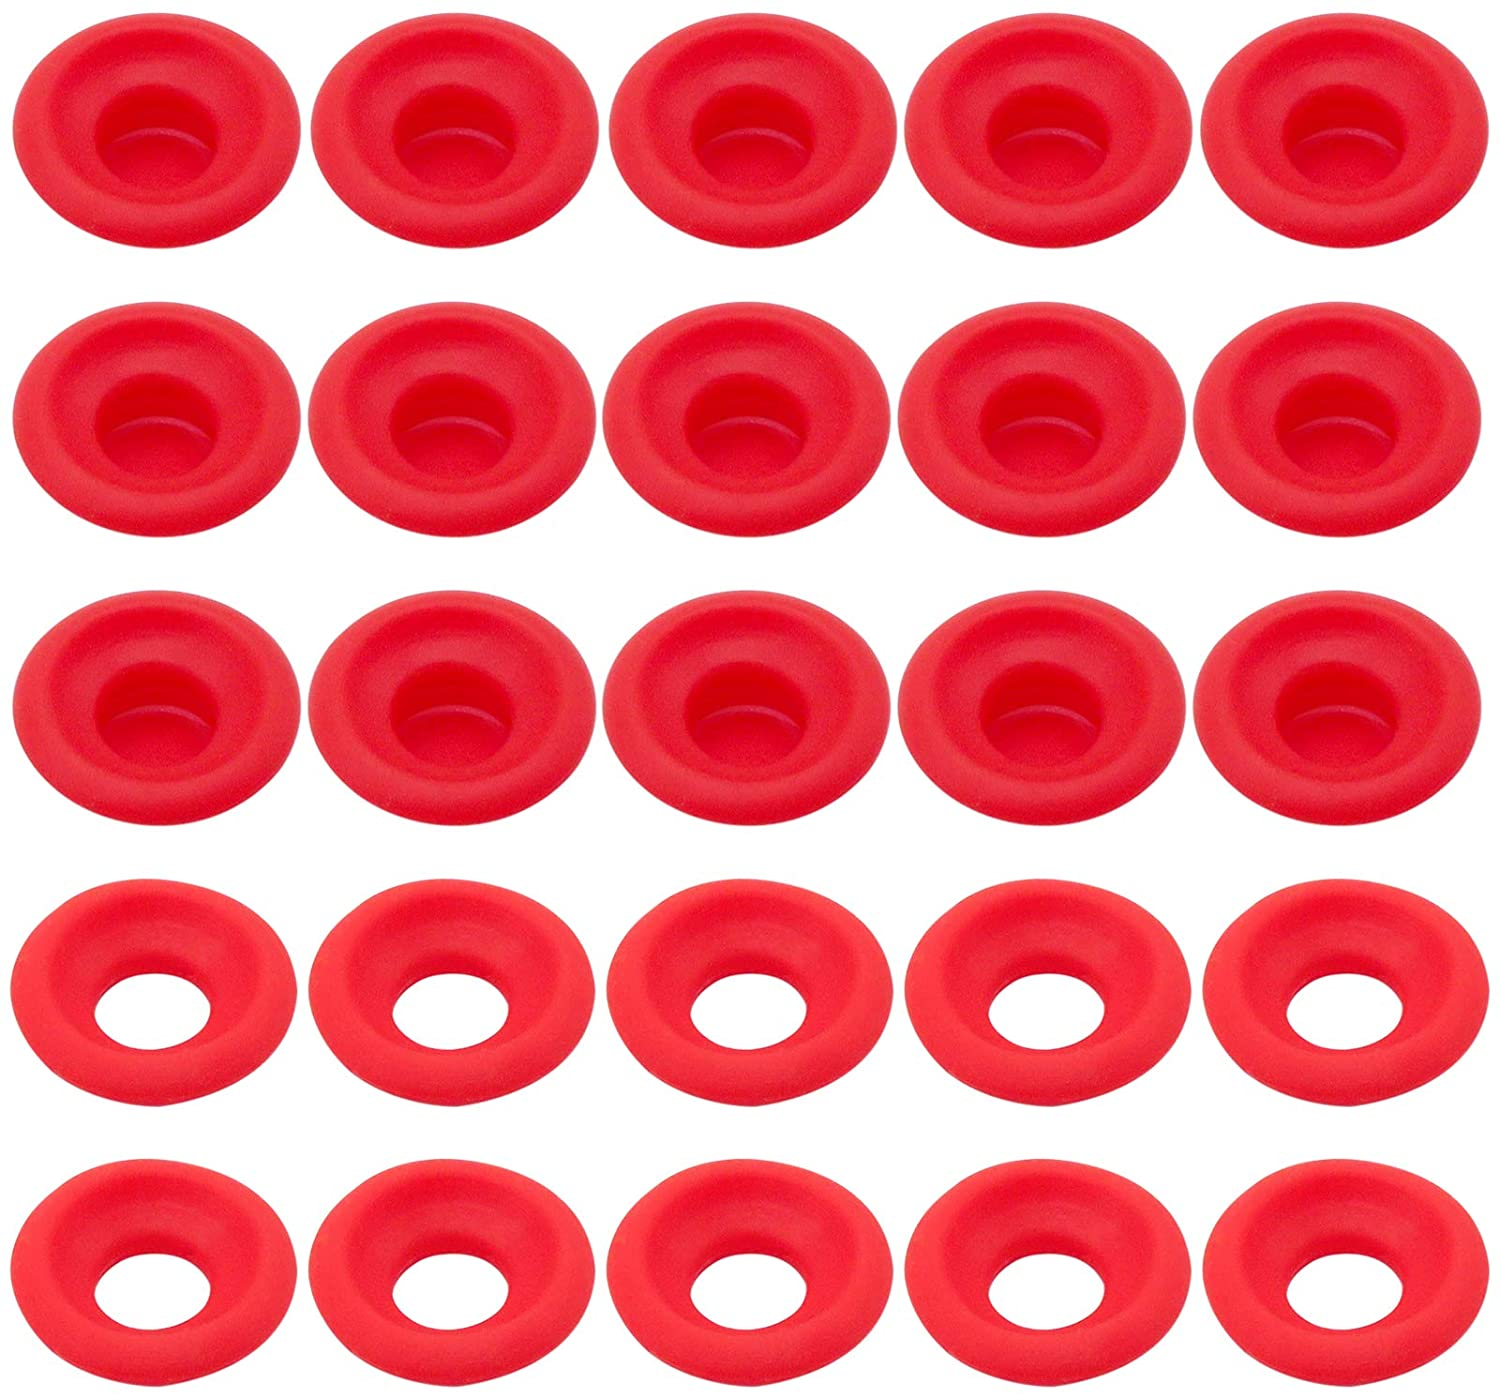 ACKLLR 50 Pieces Silicone Rubber Gaskets Washer, 2 Types High Pressure Leak-proof Seals for EZ Cap Swing Flip Top Bottle Seals Gasket for Home Brew Beer Soda Bottle Sealing, Red